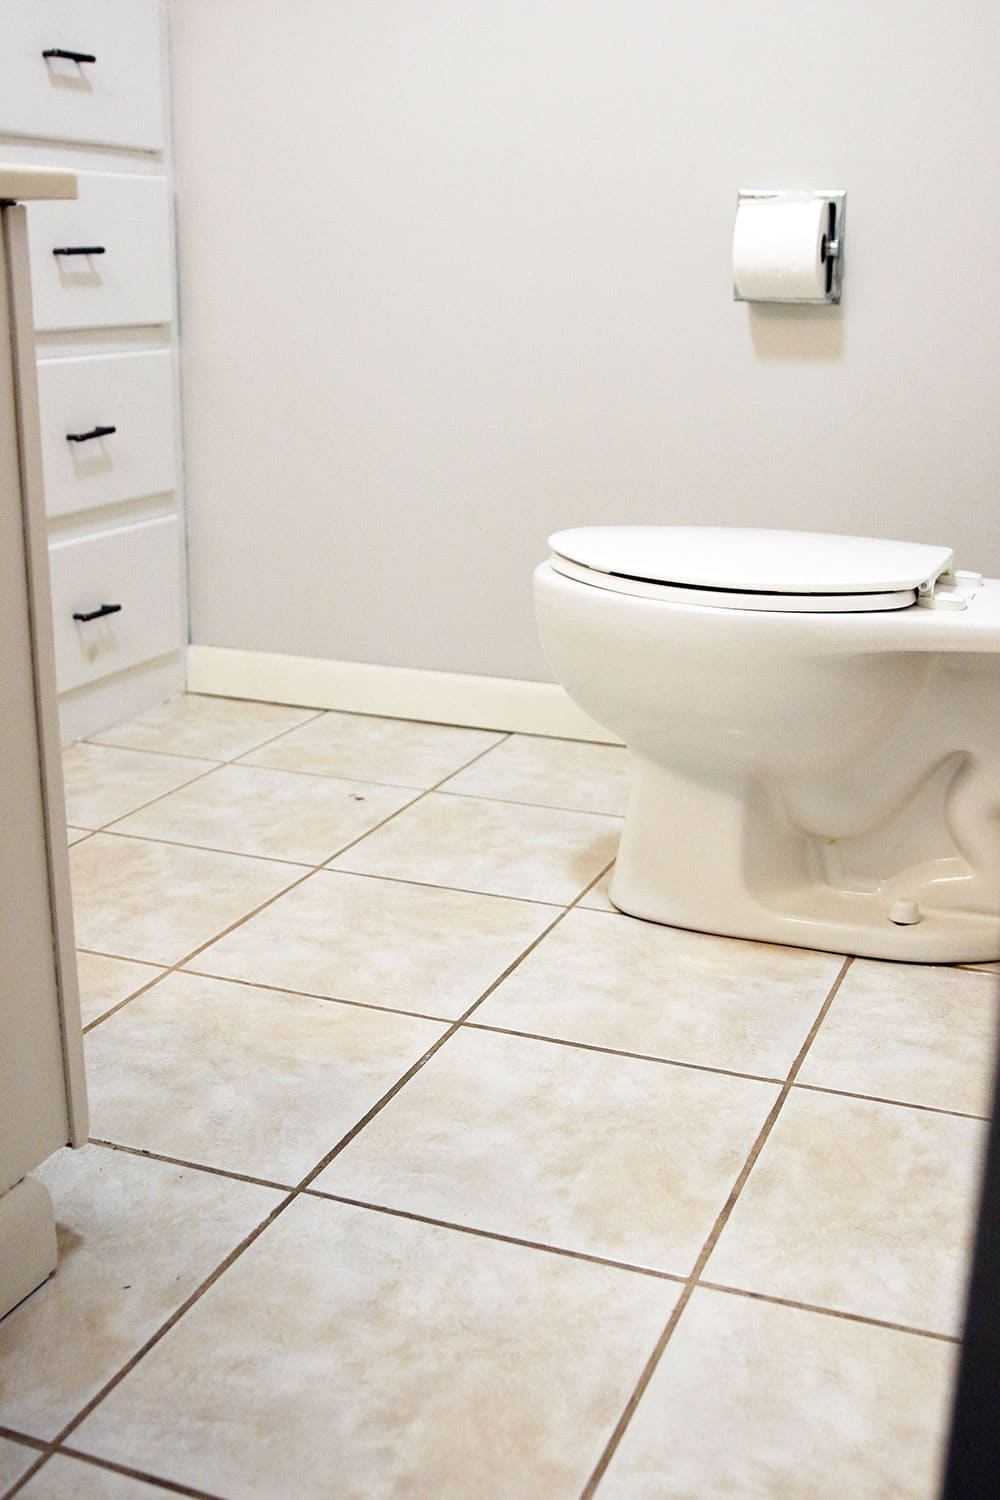 How To Make your Grout Look New in an Afternoon for $10 - Chris ...